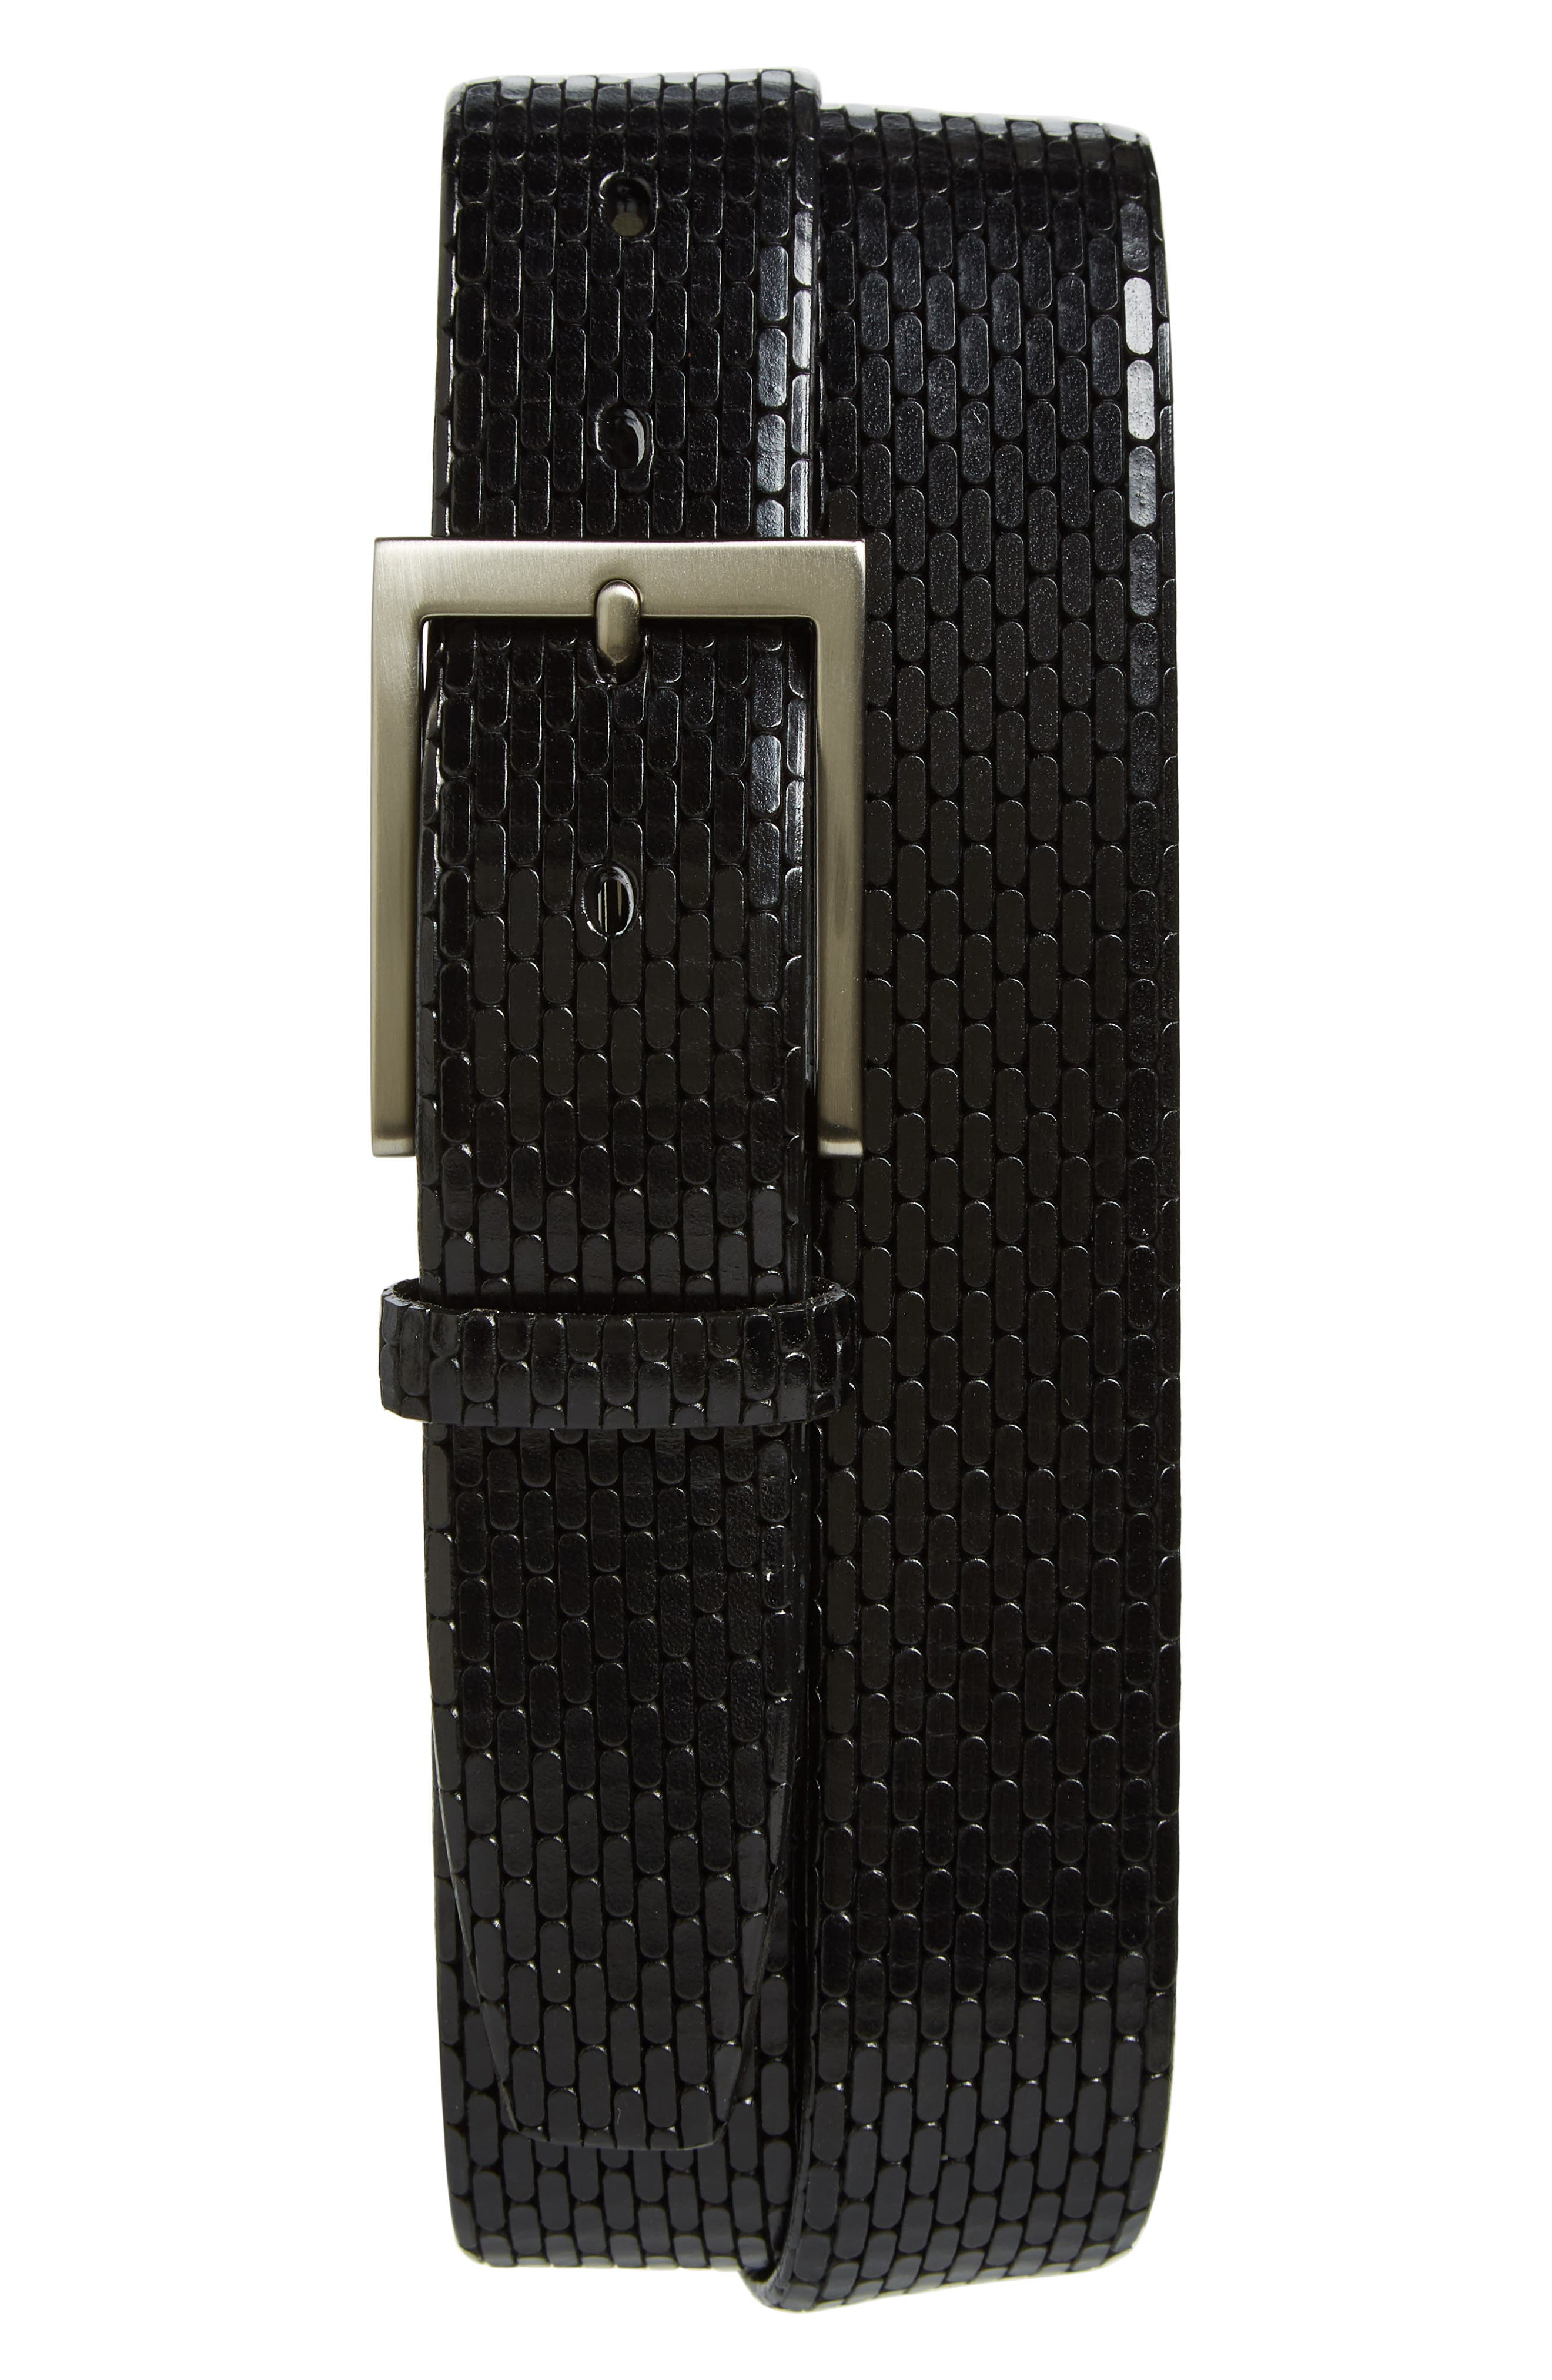 Laser-cut geometric designs touch up a stylish belt fashioned from lustrous Italian calfskin. Style Name: Torino Geometric Leather Belt. Style Number: 5940580. Available in stores.